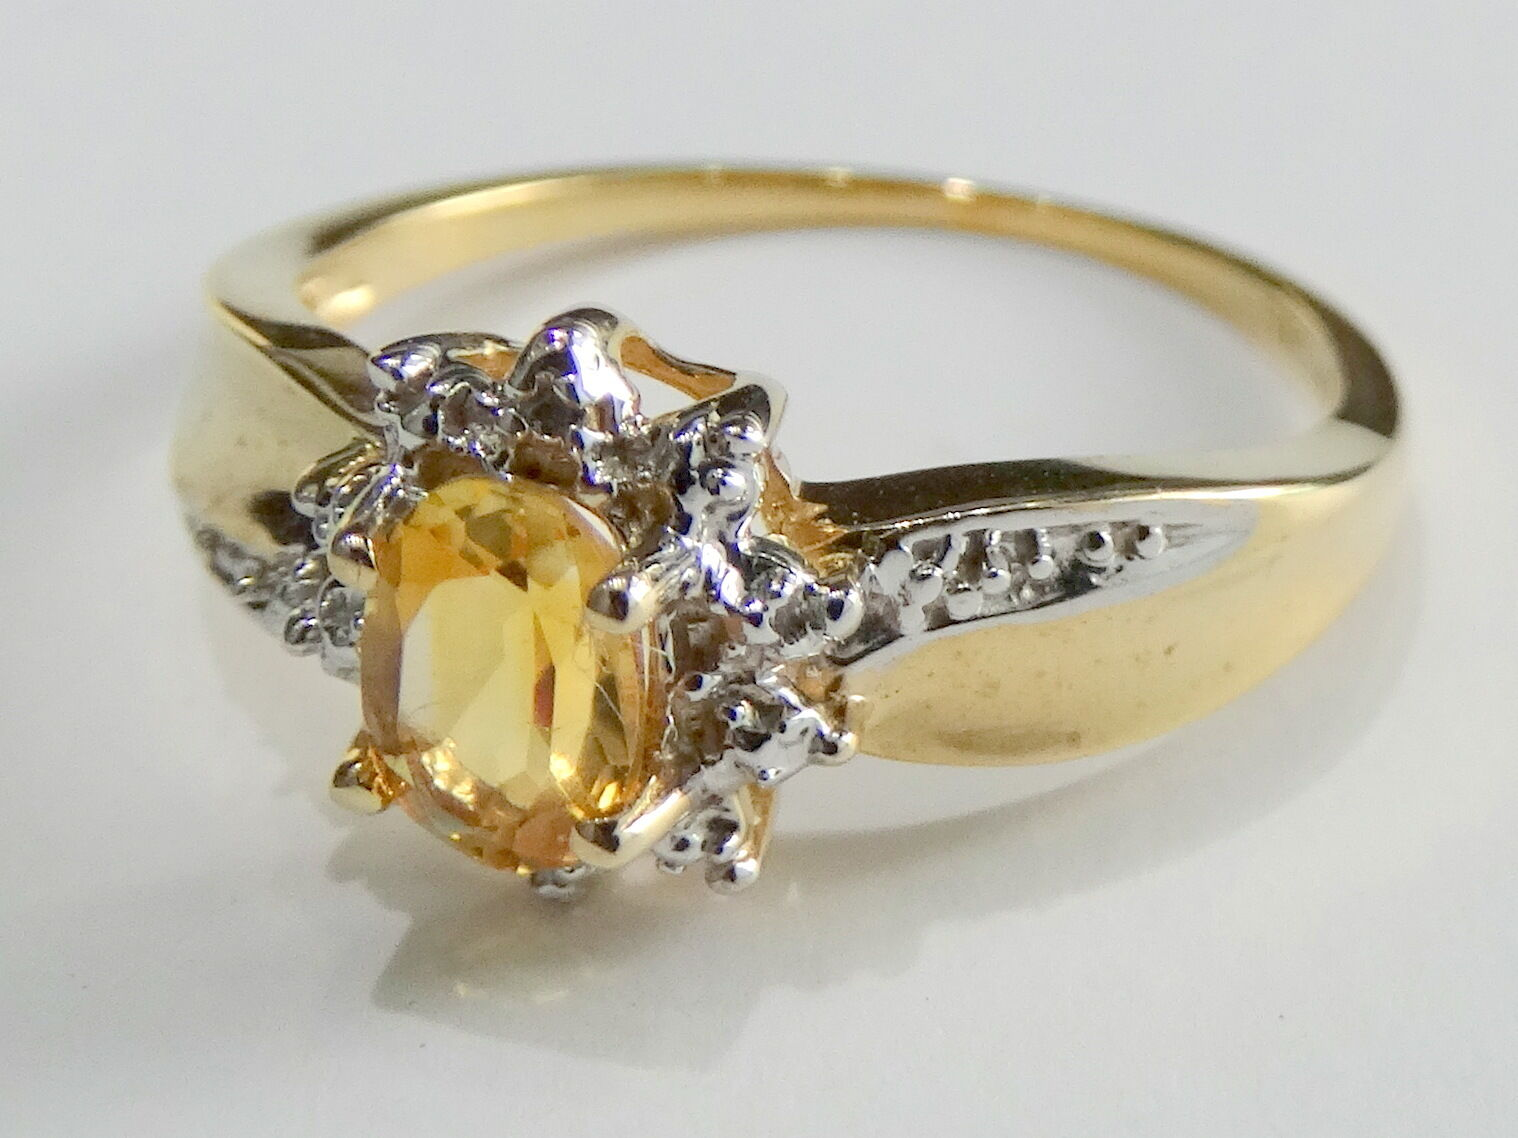 Genuine Birthstone 10k gold Diamond Citrine Engagement Wedding Ring November